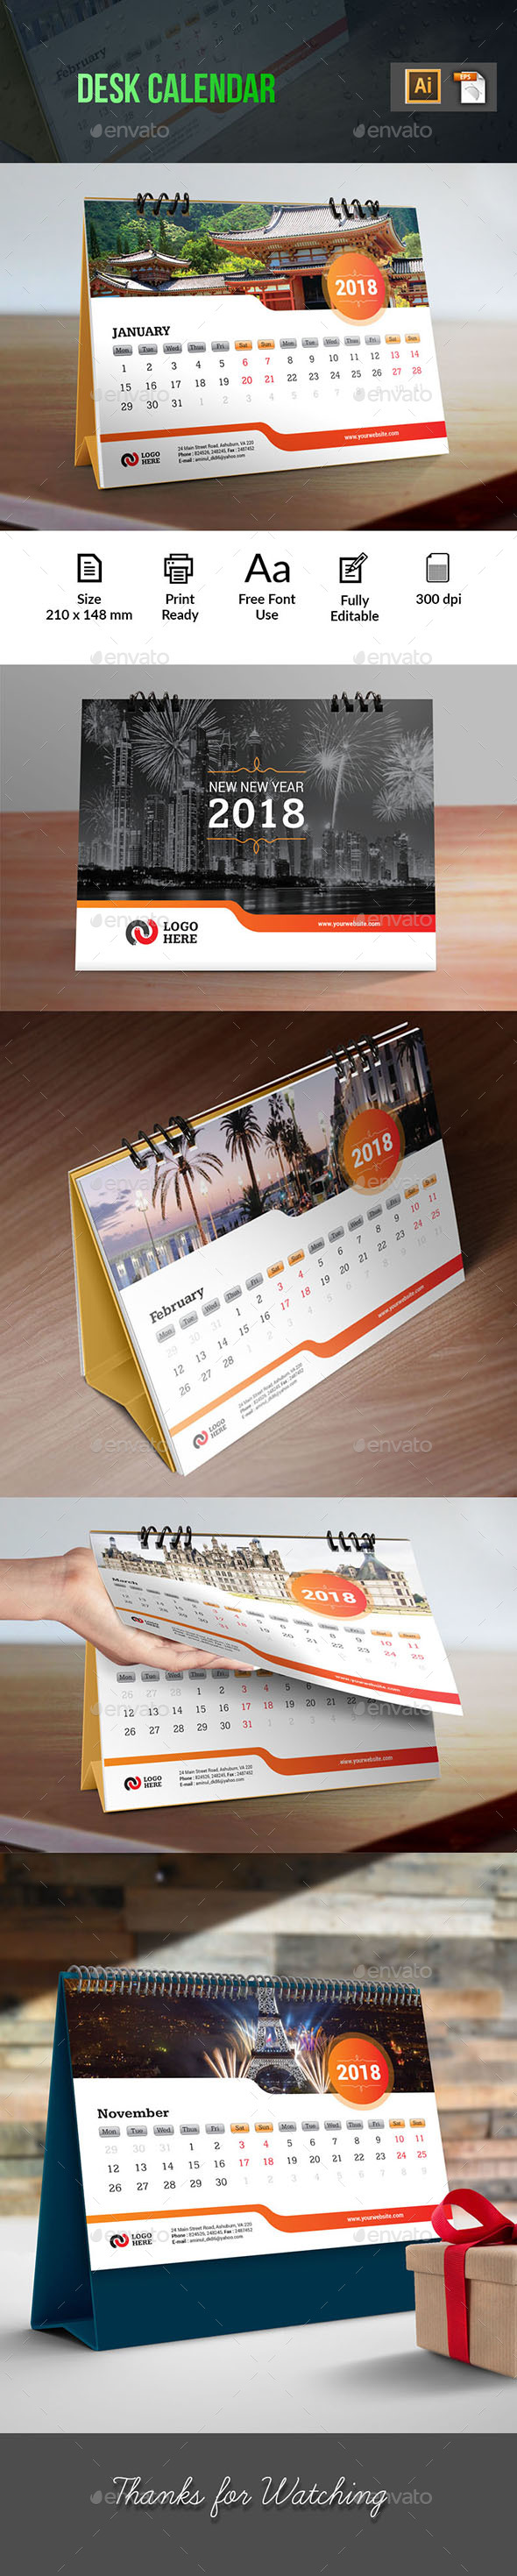 Desk Calendar - Calendars Stationery